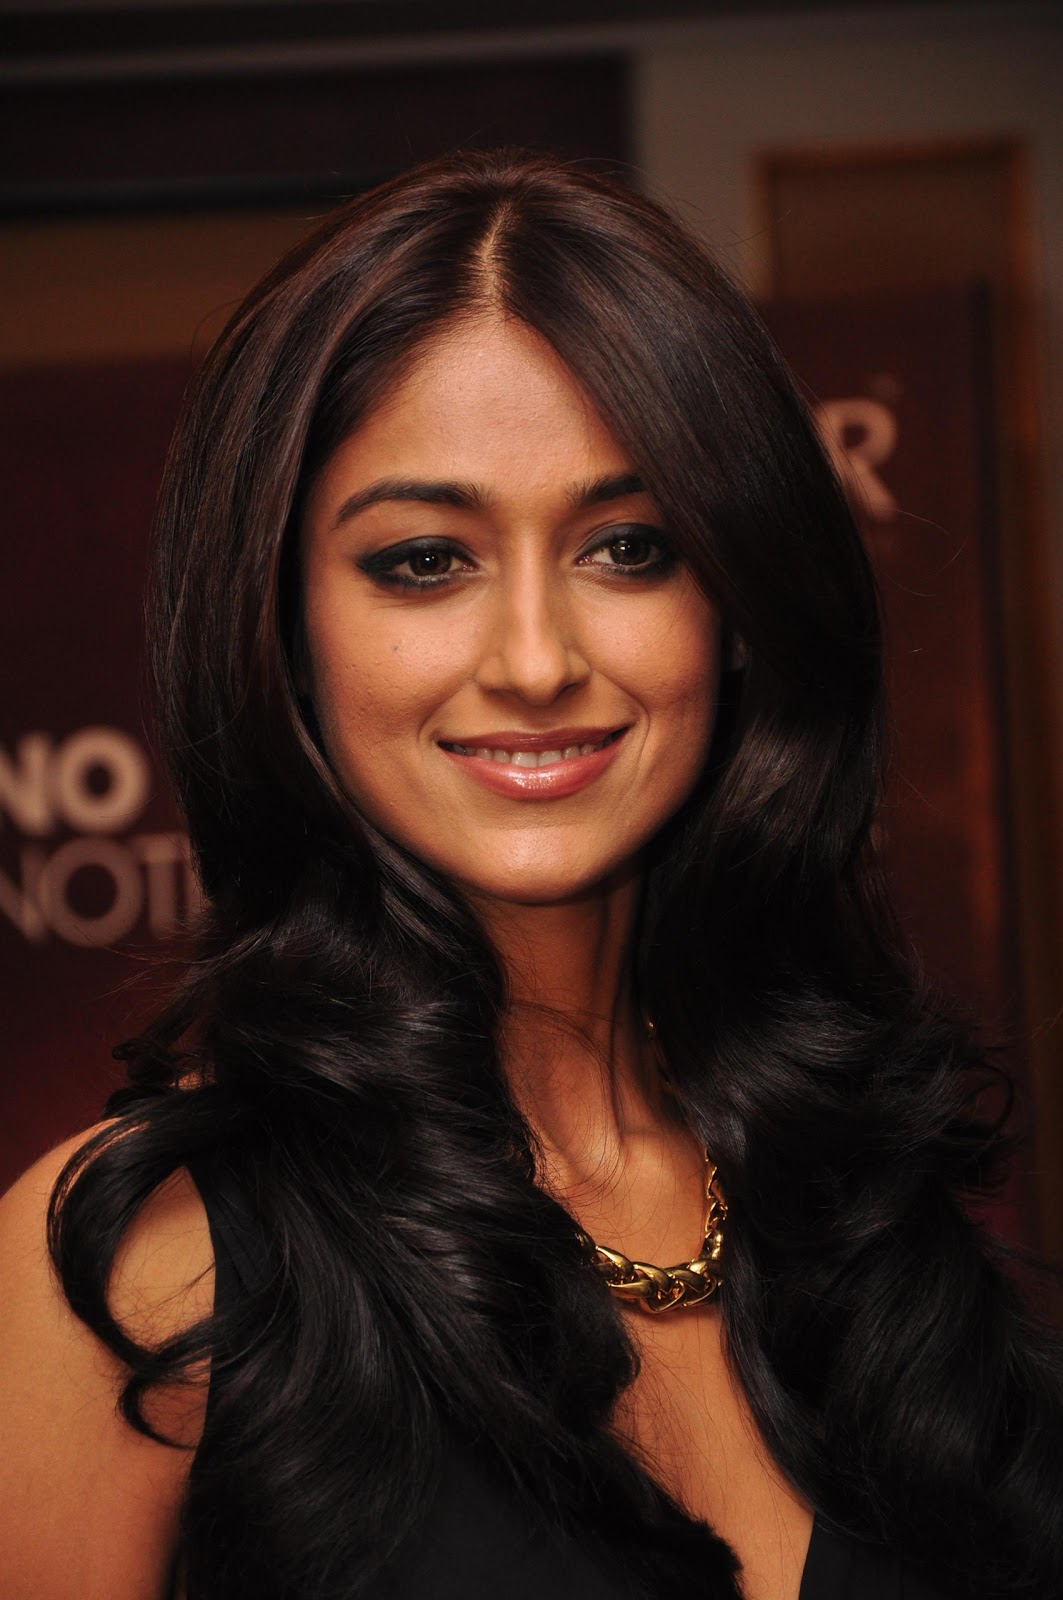 rustom' actress ileana d'cruz hd photos & wallpapers - hd photos